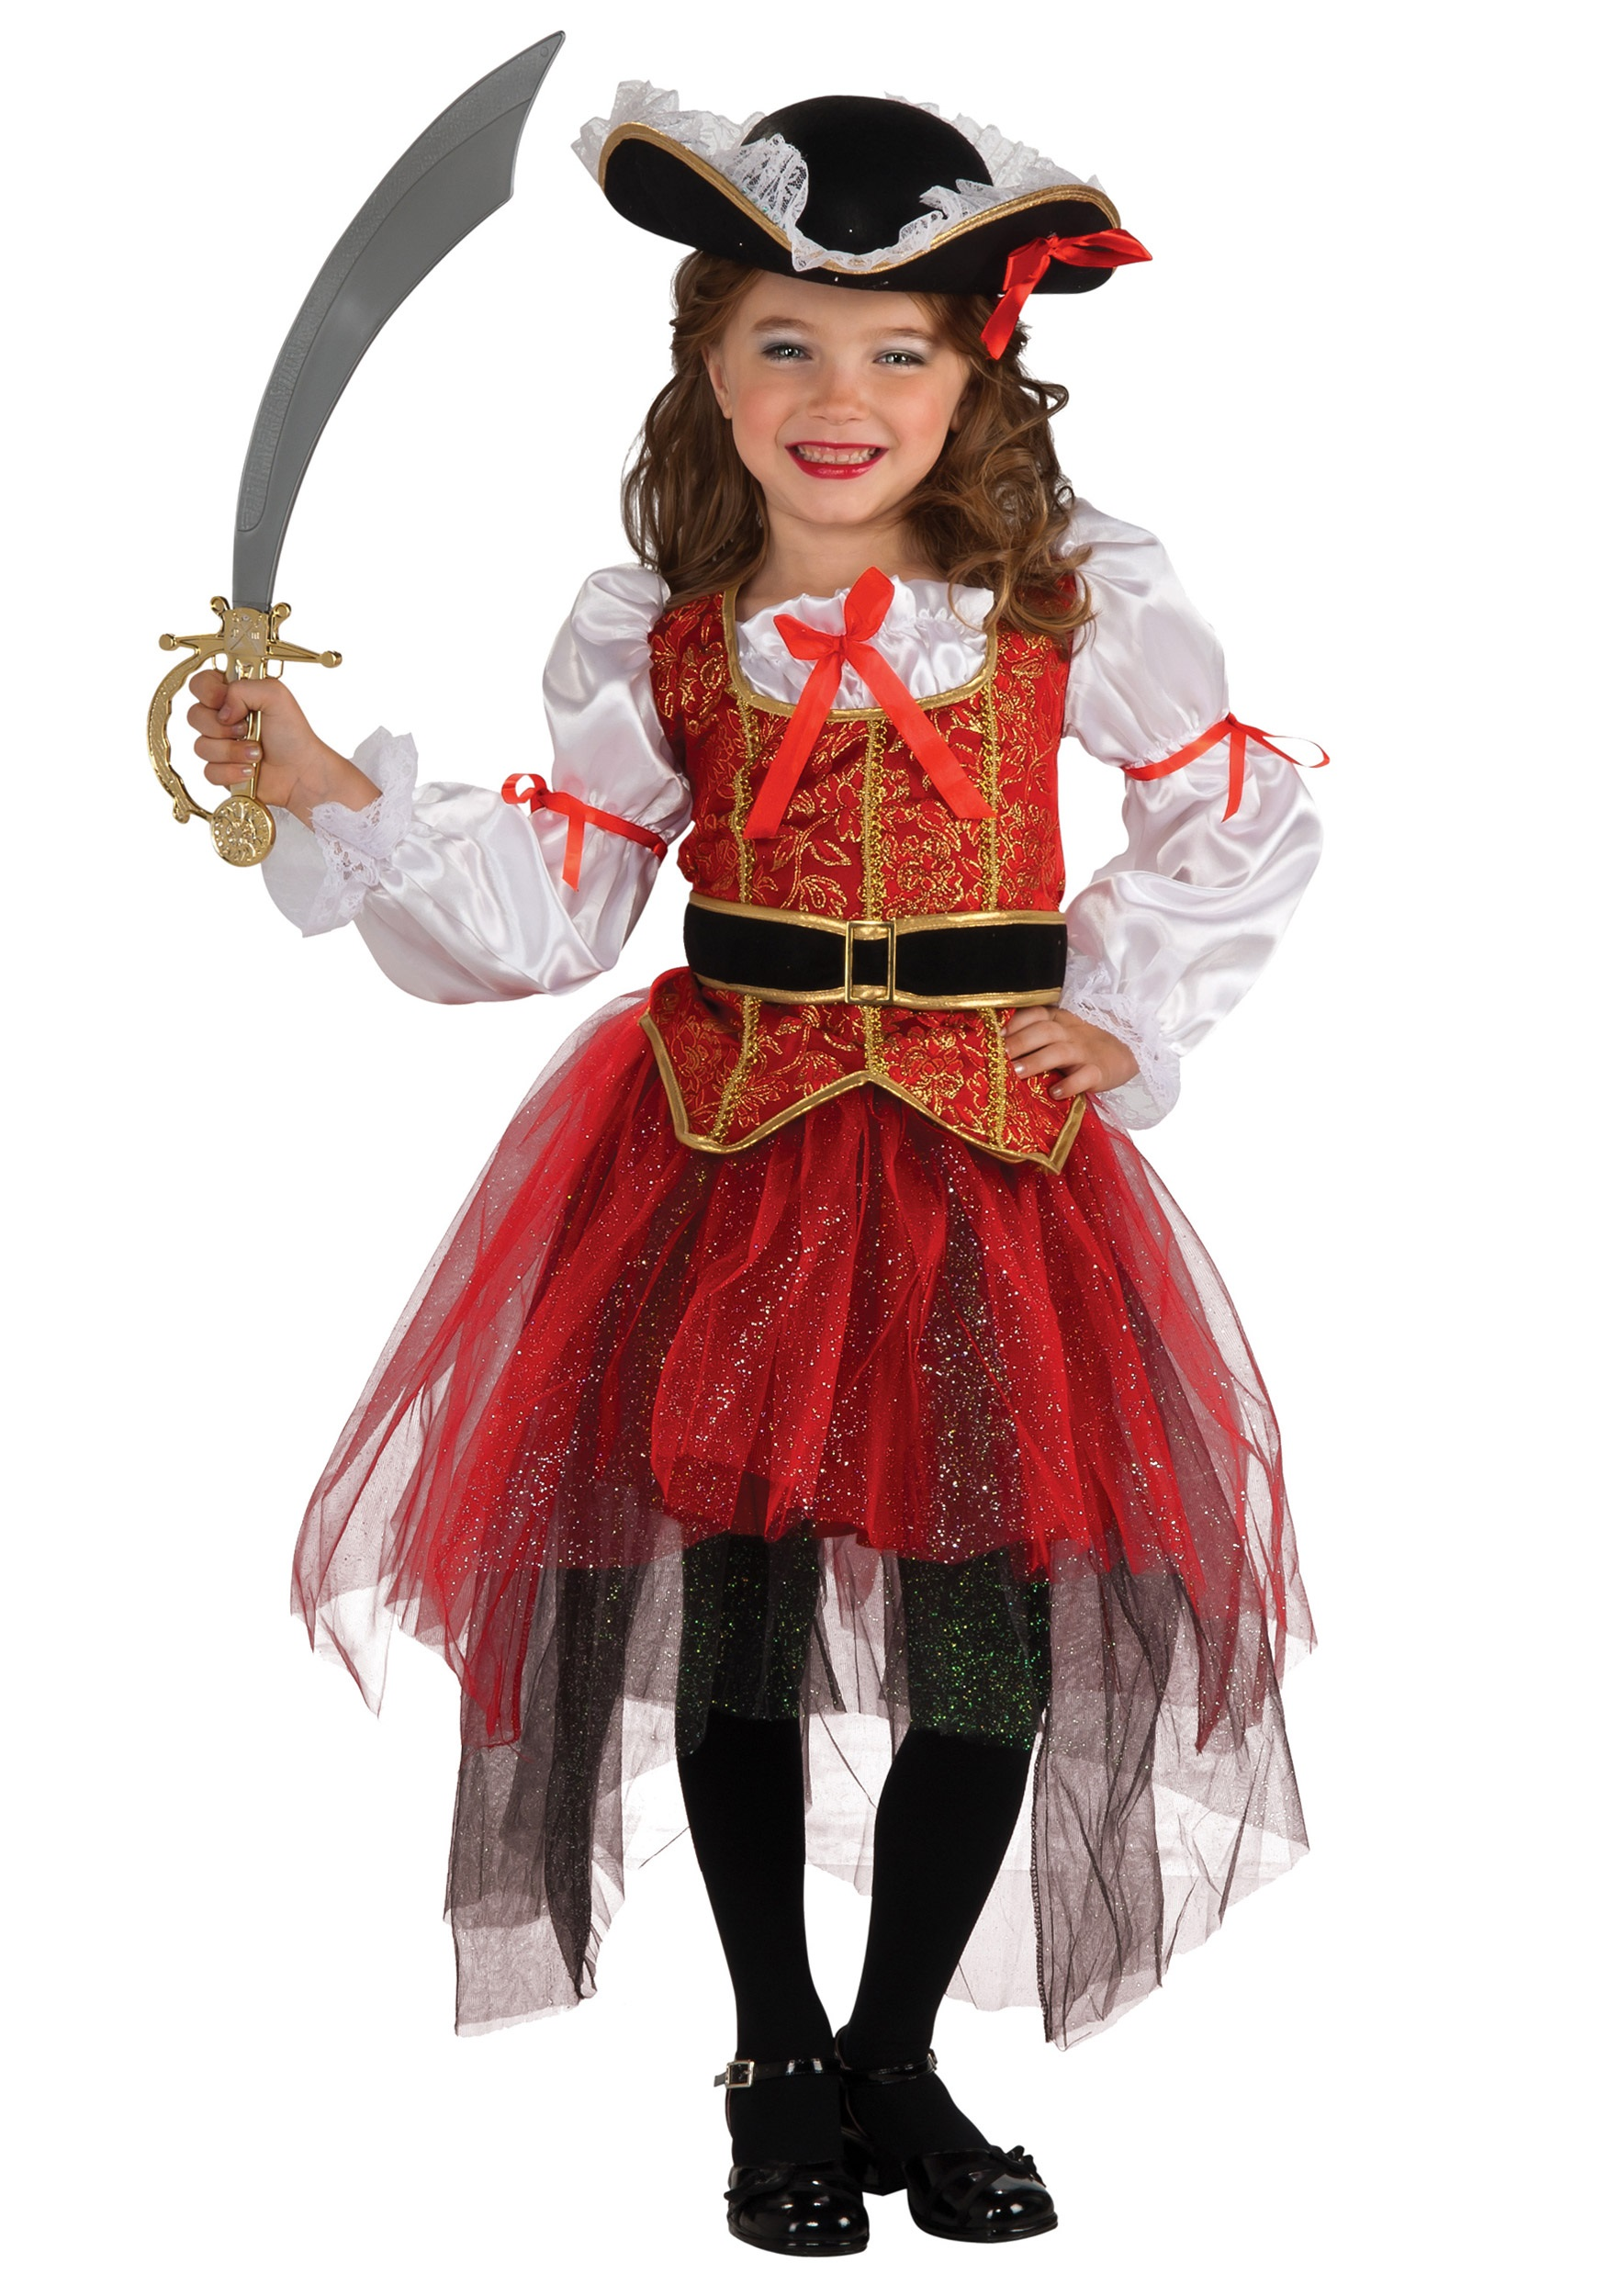 Girls Princess Sea Pirate Costume | eBay - photo#2